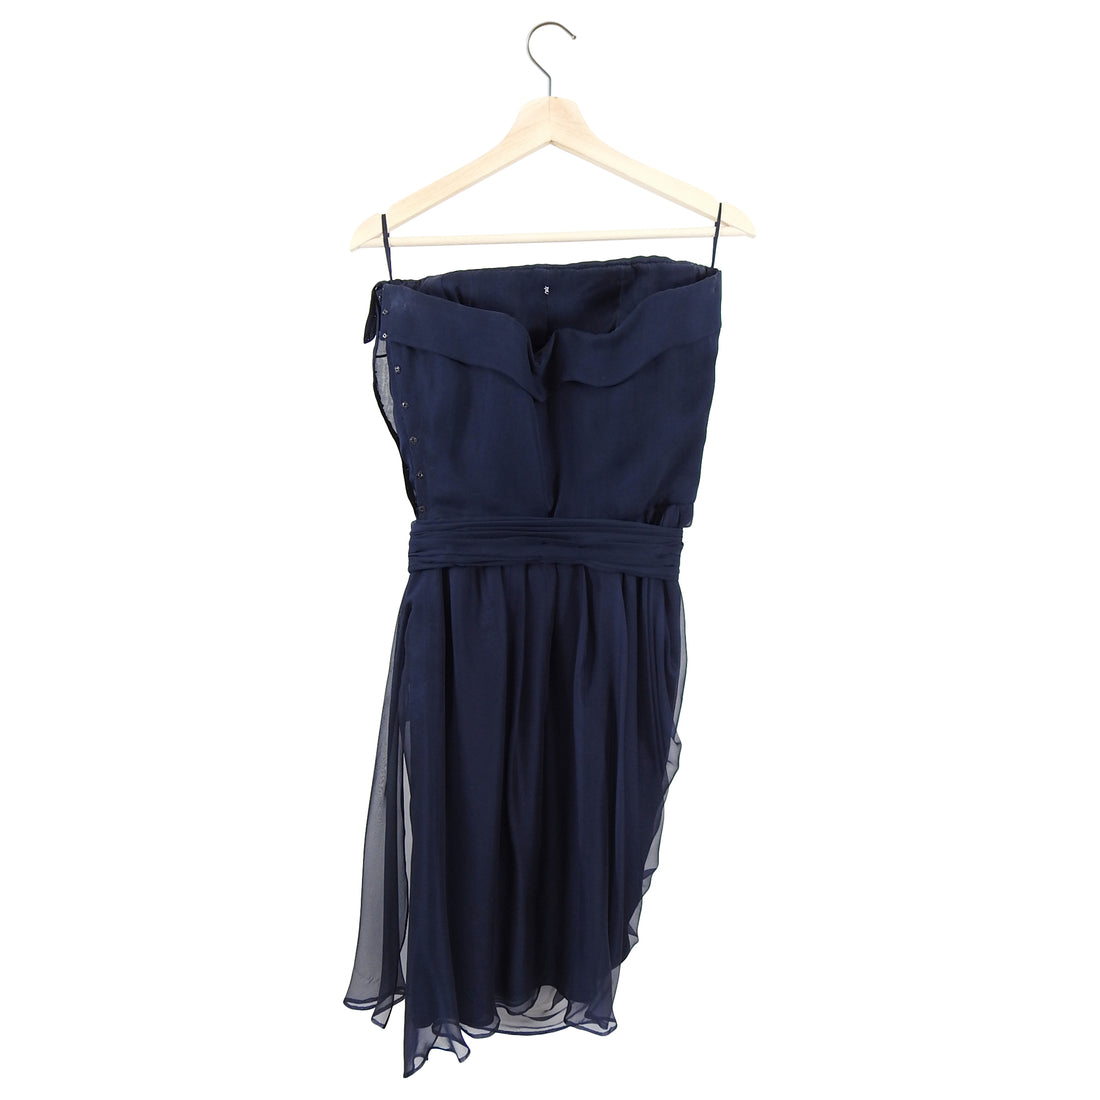 YSL Yves Saint Laurent Vintage 1990's Haute Couture Navy Silk Strapless Dress - 6